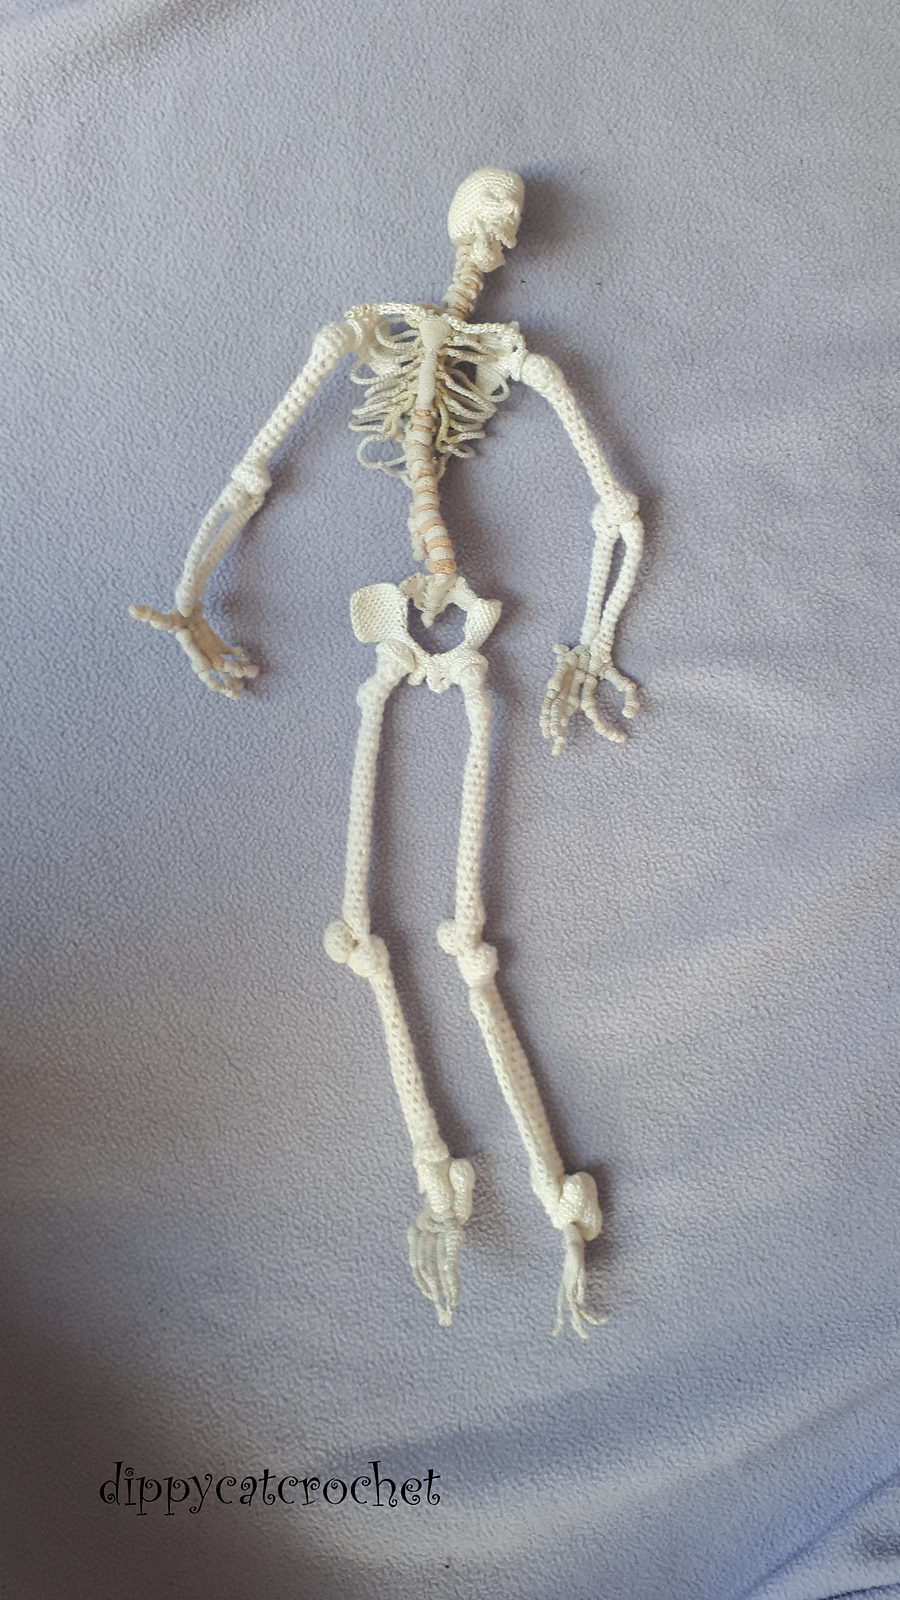 Crochet an Anatomically Correct Skeleton - FREE Pattern Includes All 206 Bones, 1/5th Size Scale Model!